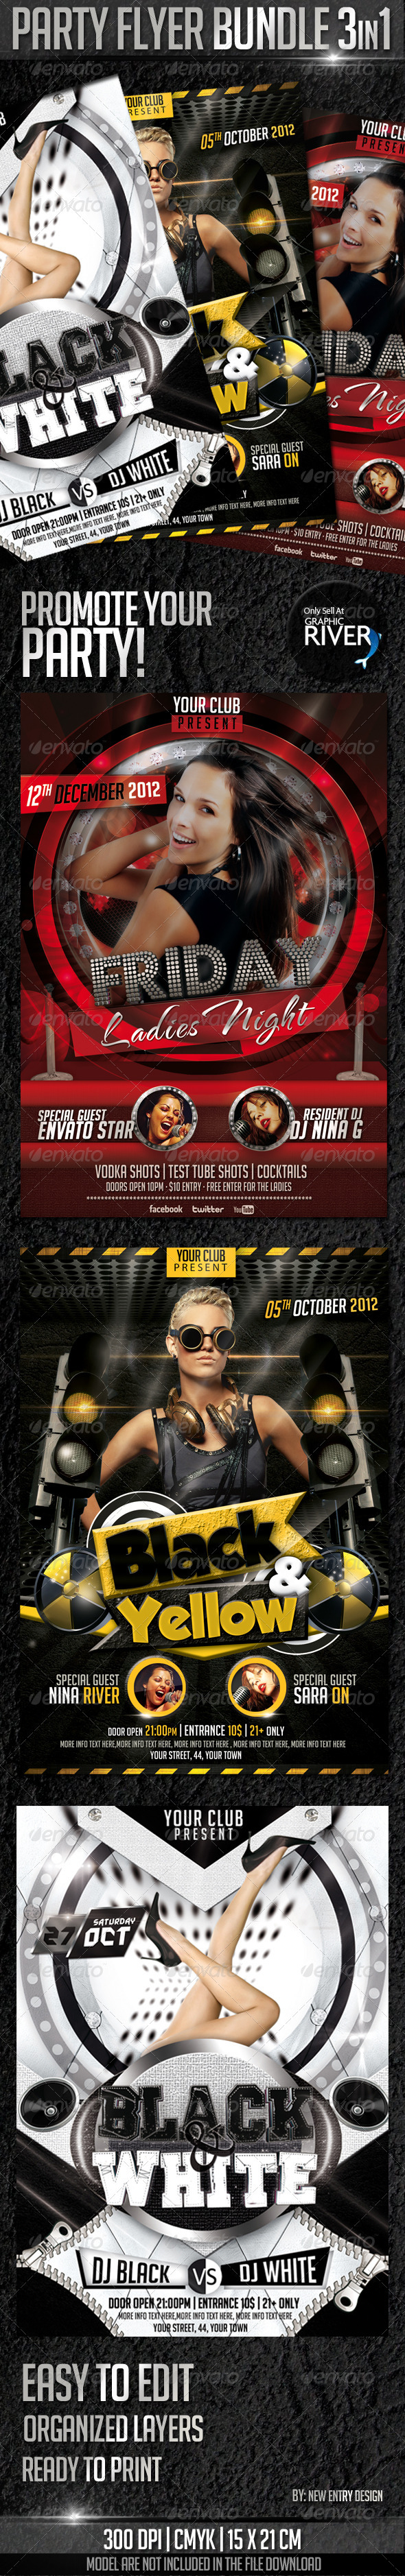 GraphicRiver Party Flyer Bundle 3in1 3410080